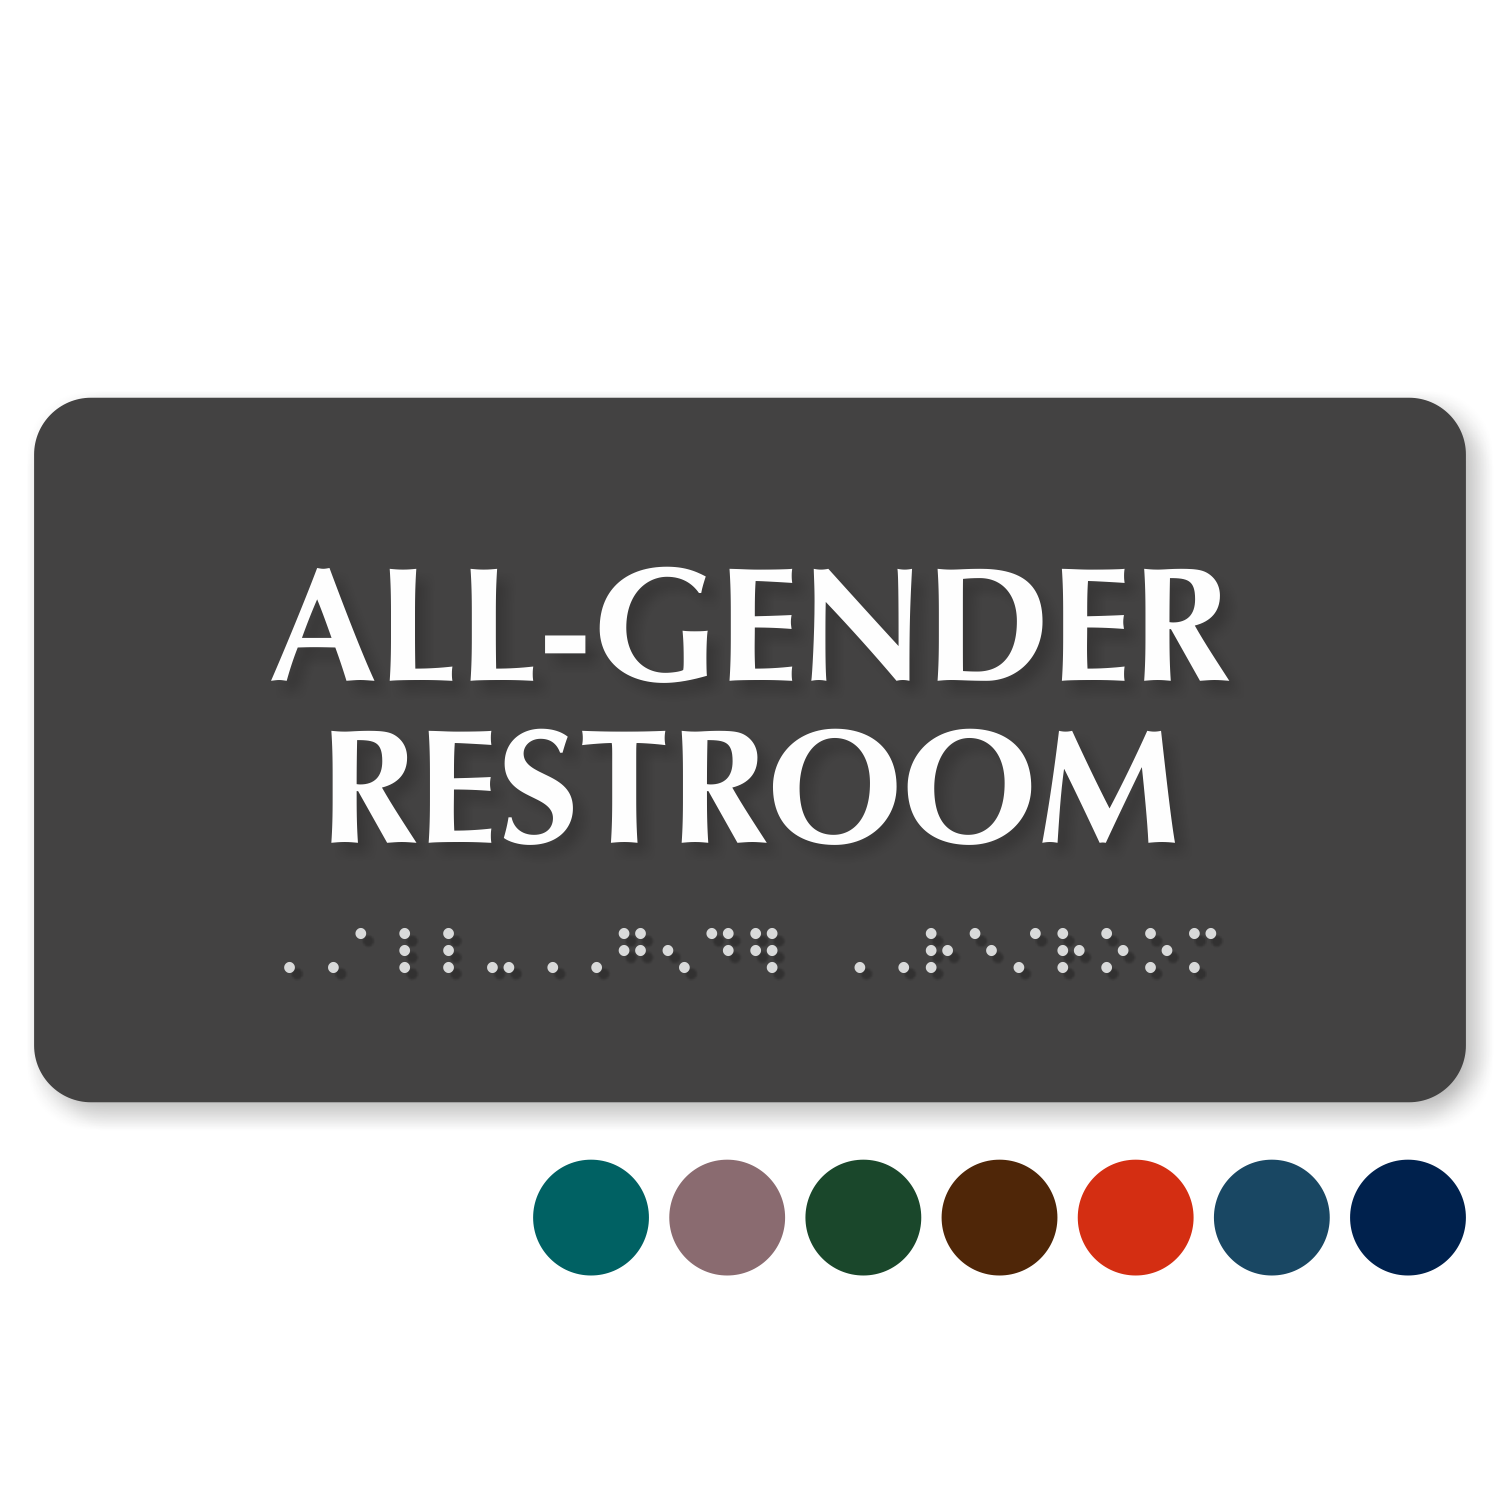 Bathroom Signs Braille all-gender restroom signs | transgender restroom signs